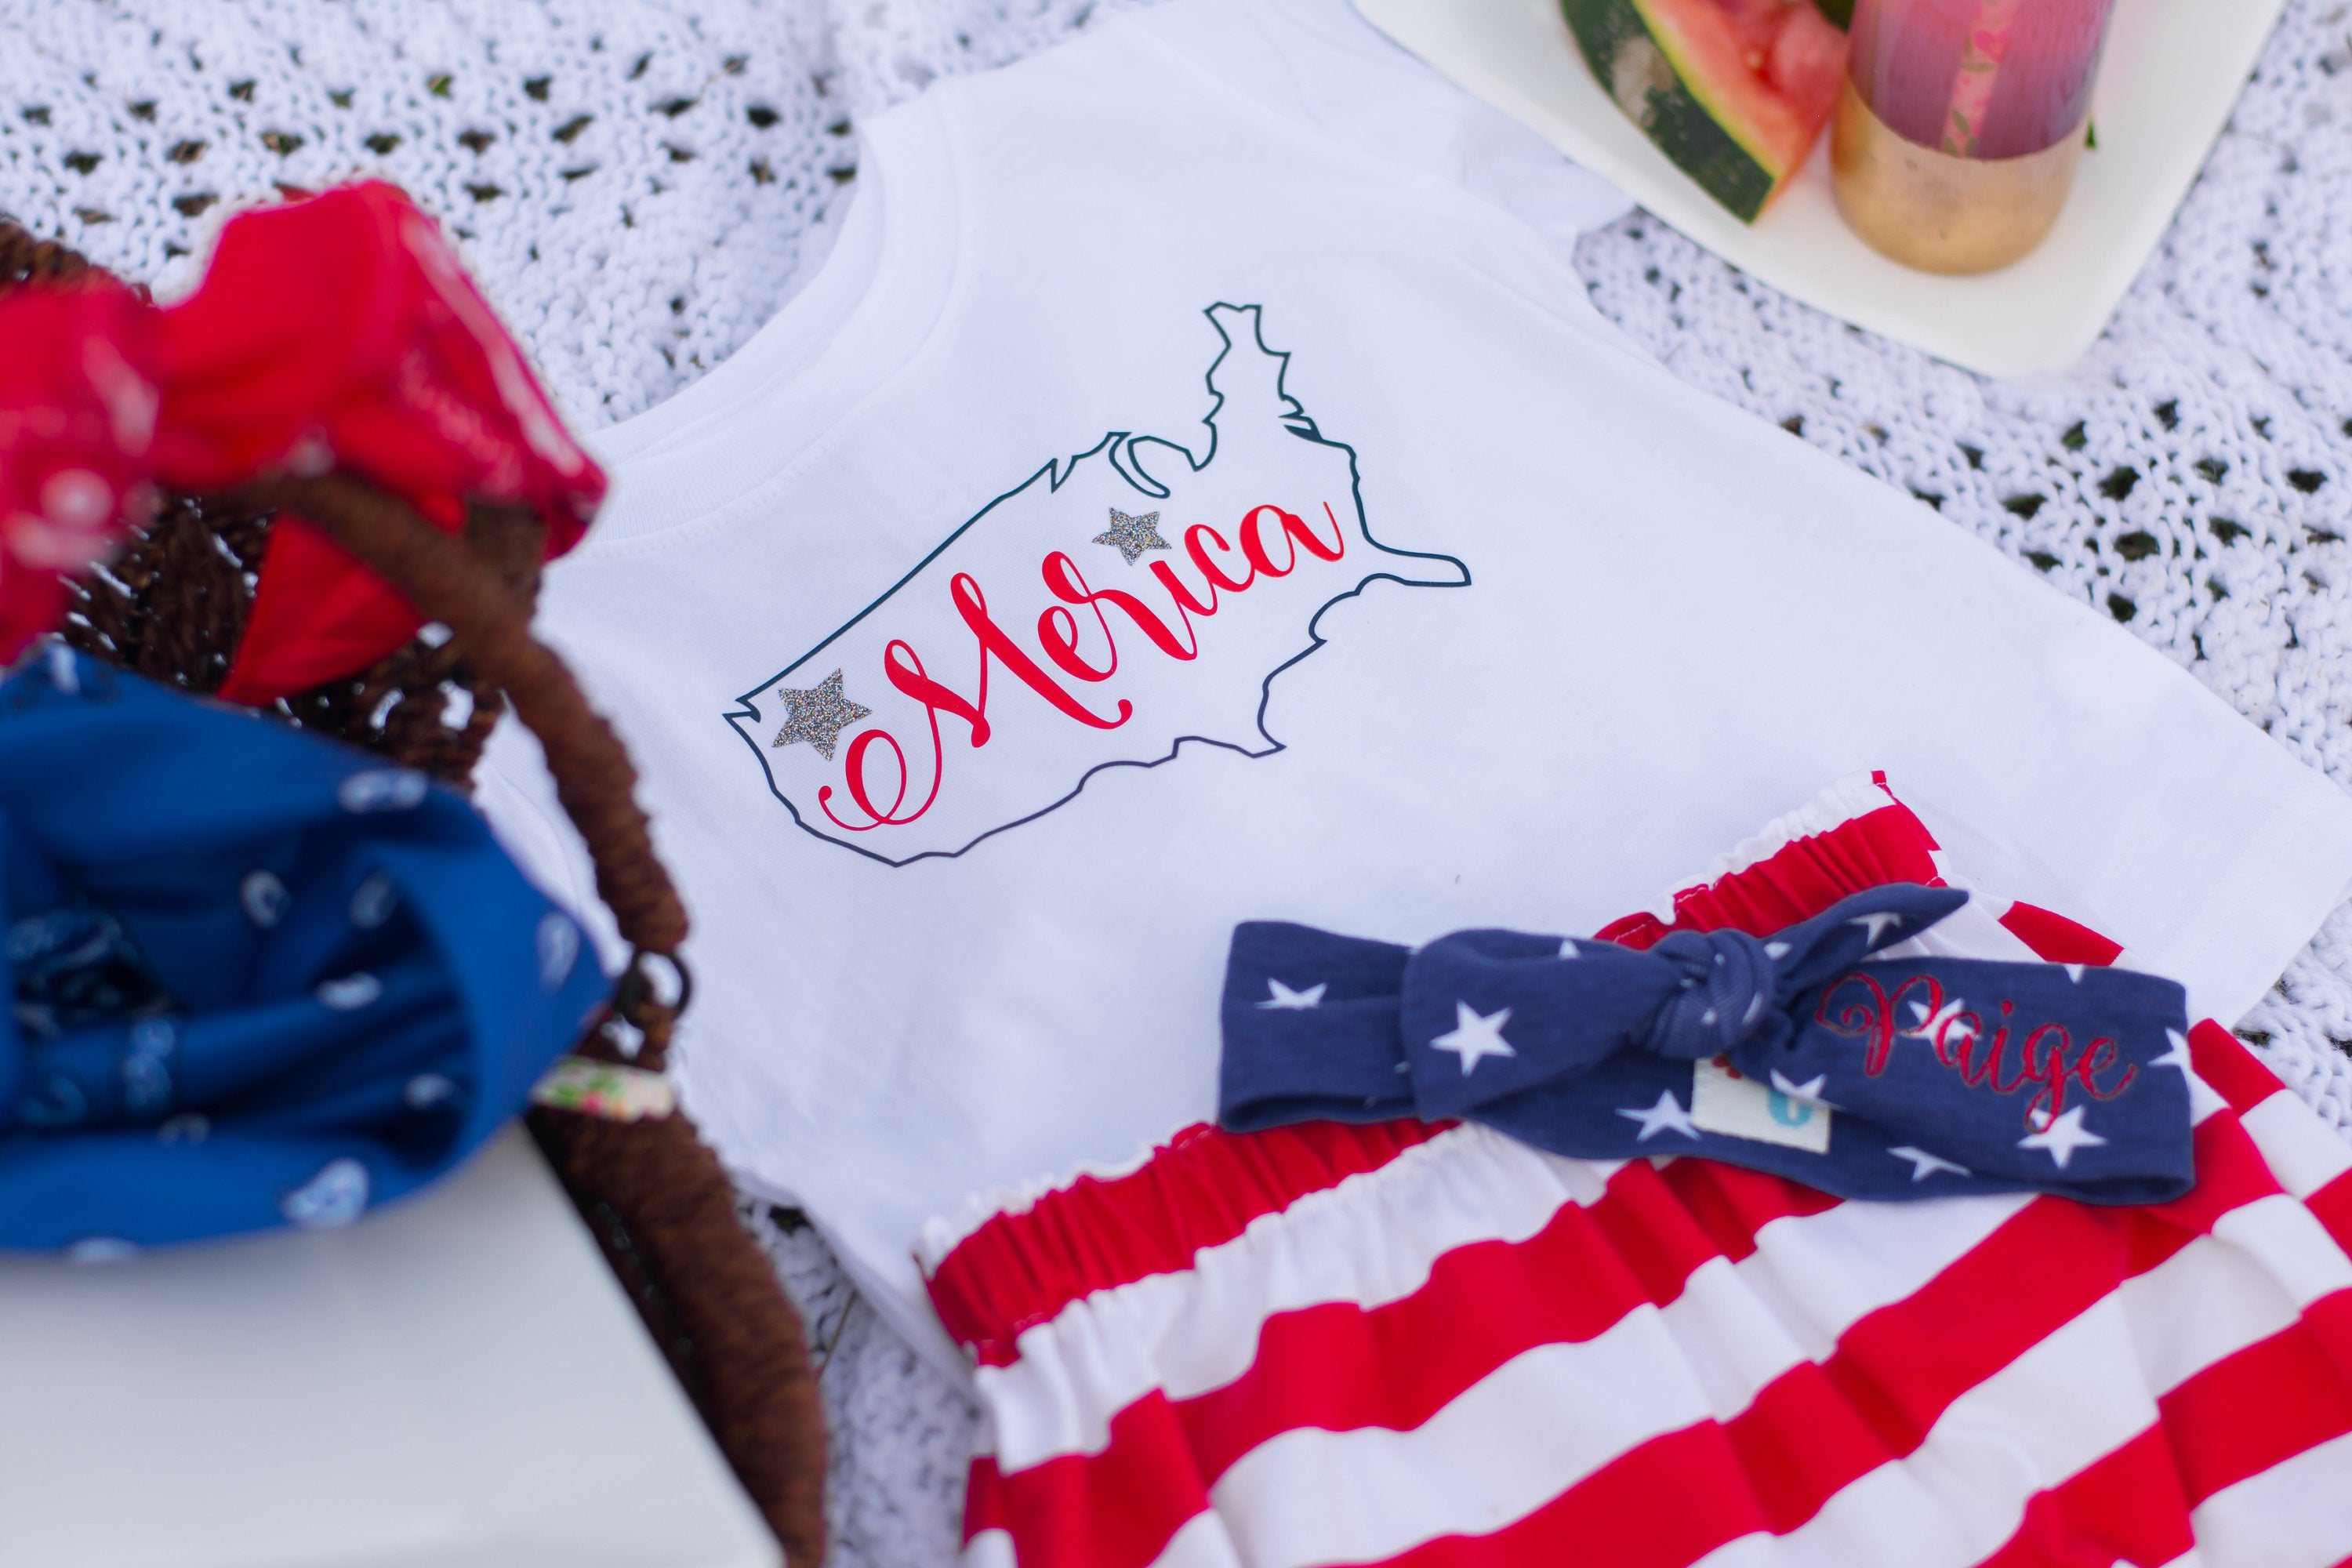 Merica tshirt with blue star personalized top knot headband and red striped bloomers or bubble shorts